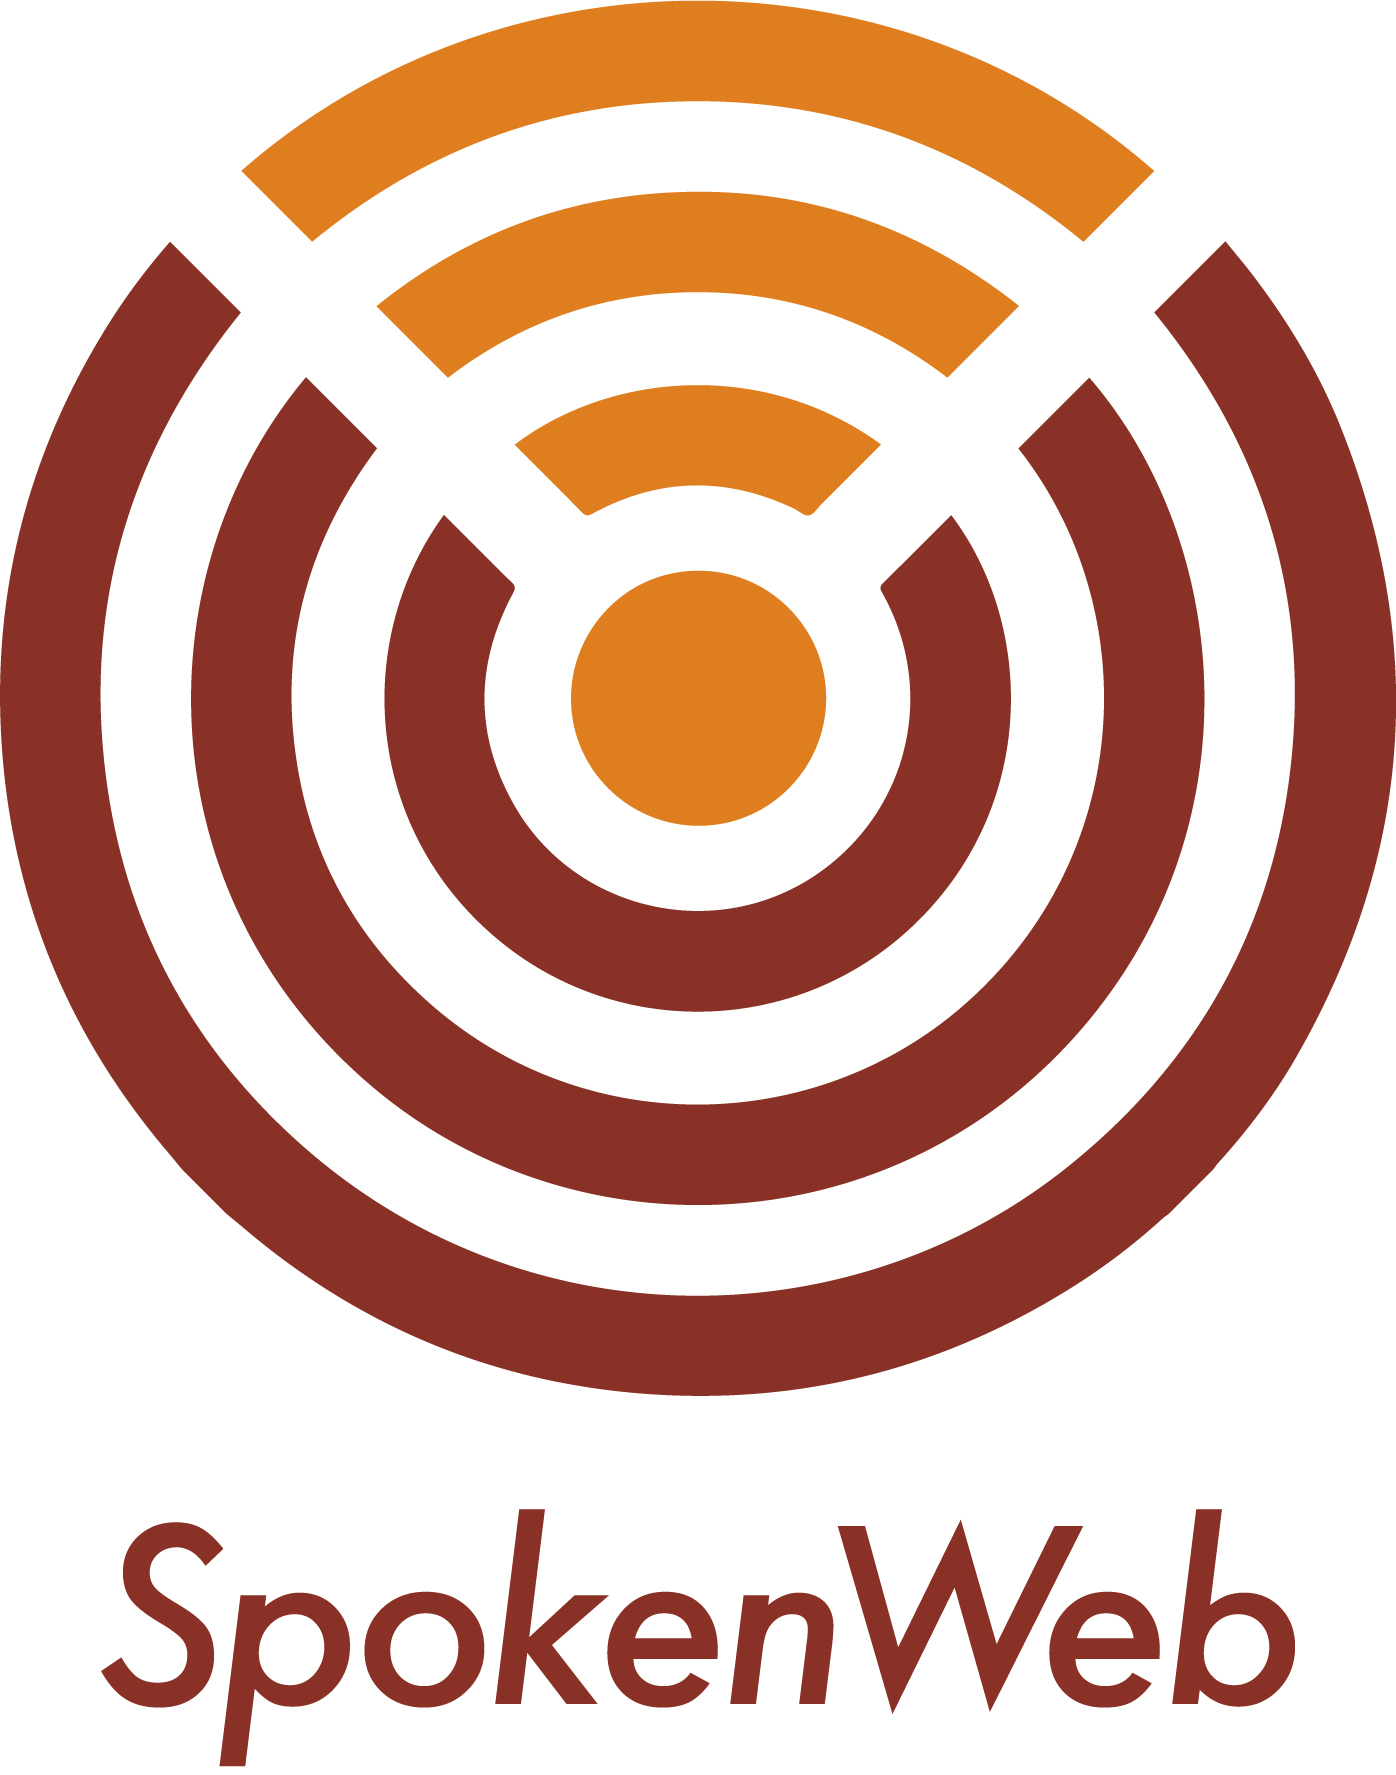 Logo for the SpokenWeb